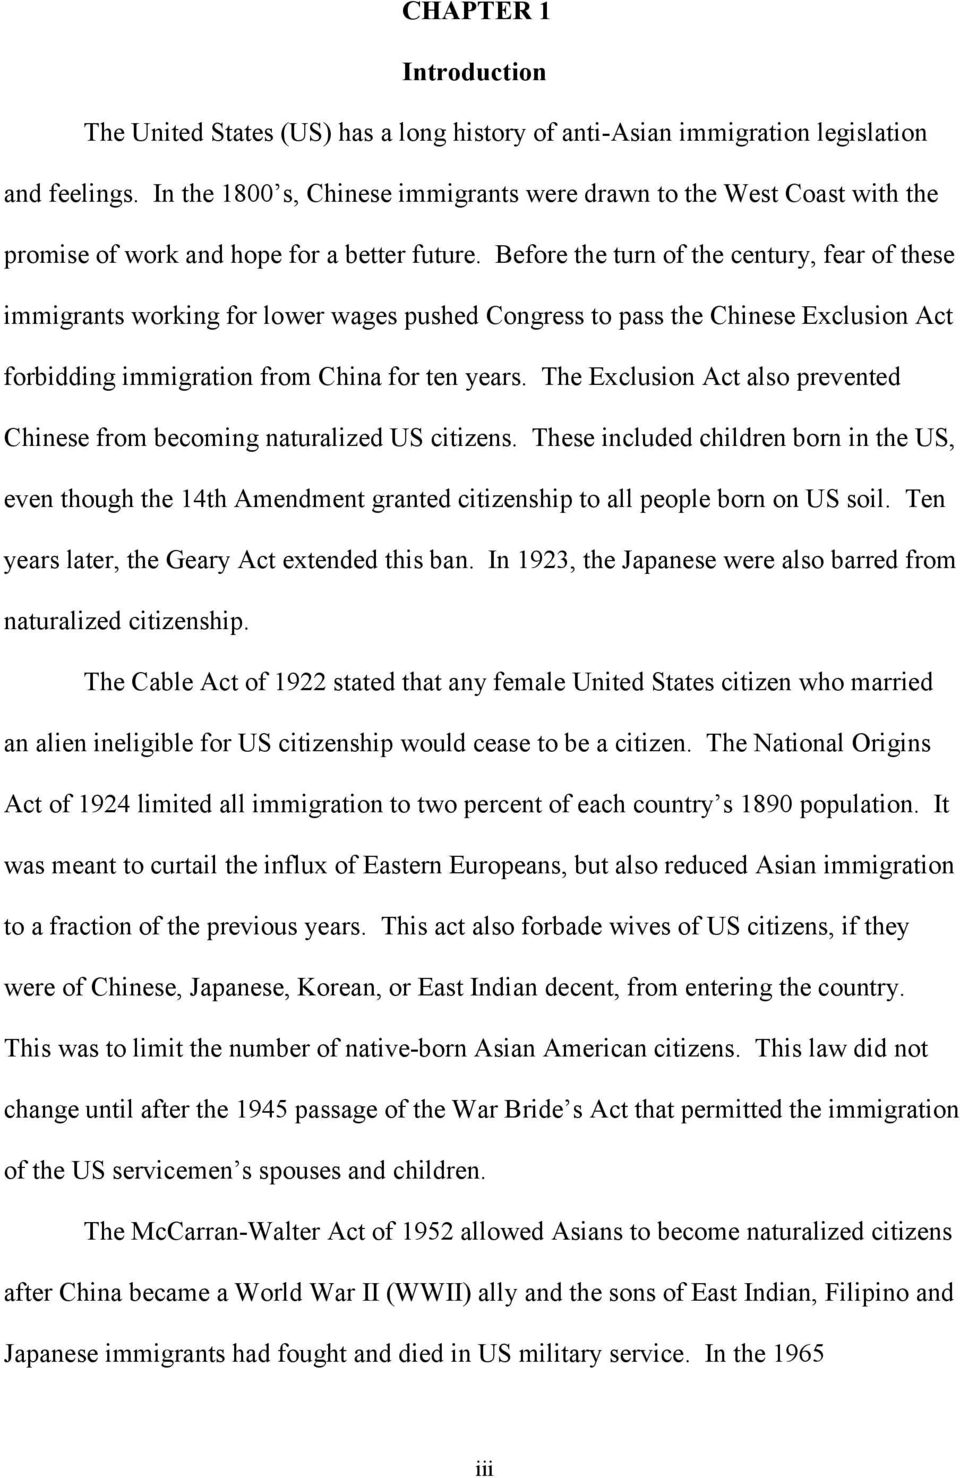 Before the turn of the century, fear of these immigrants working for lower wages pushed Congress to pass the Chinese Exclusion Act forbidding immigration from China for ten years.